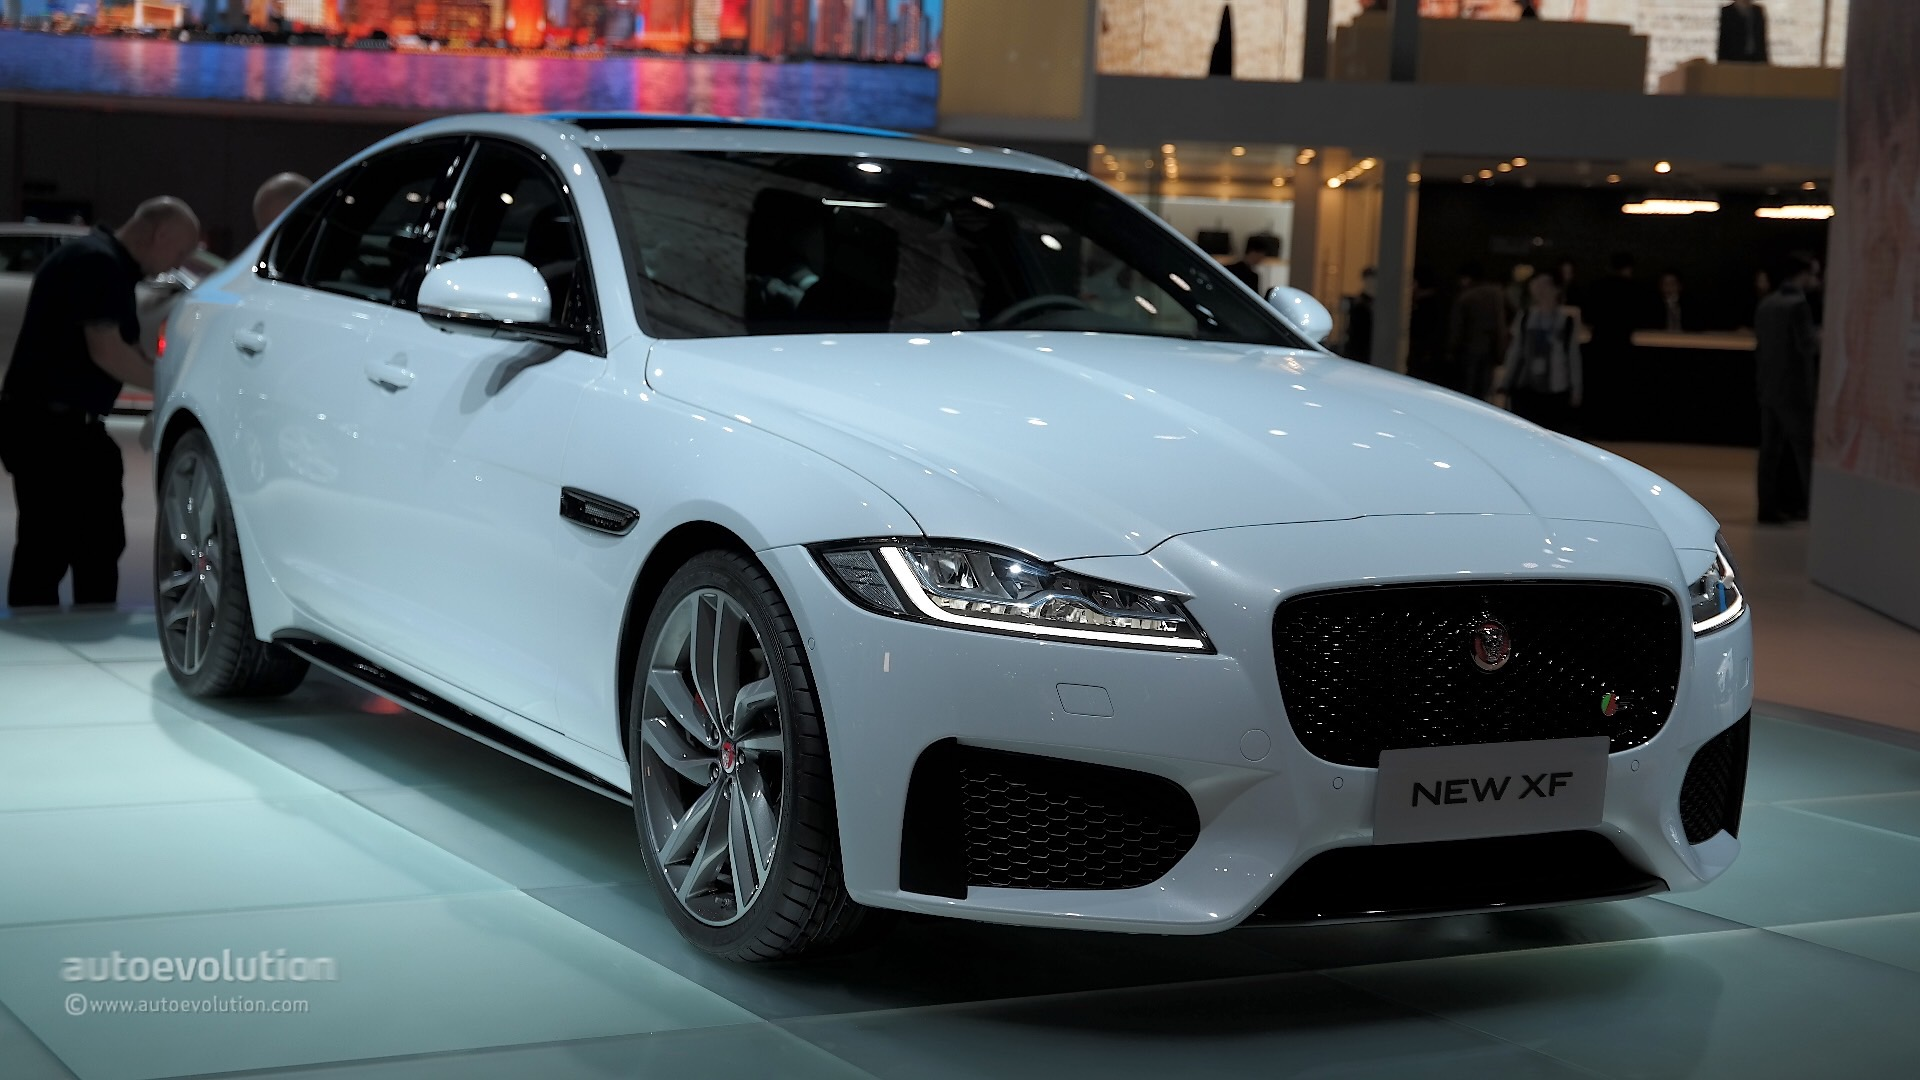 New Wave Auto >> Jaguar XF Claims a Piece of the Chinese Auto Market in Shanghai - autoevolution